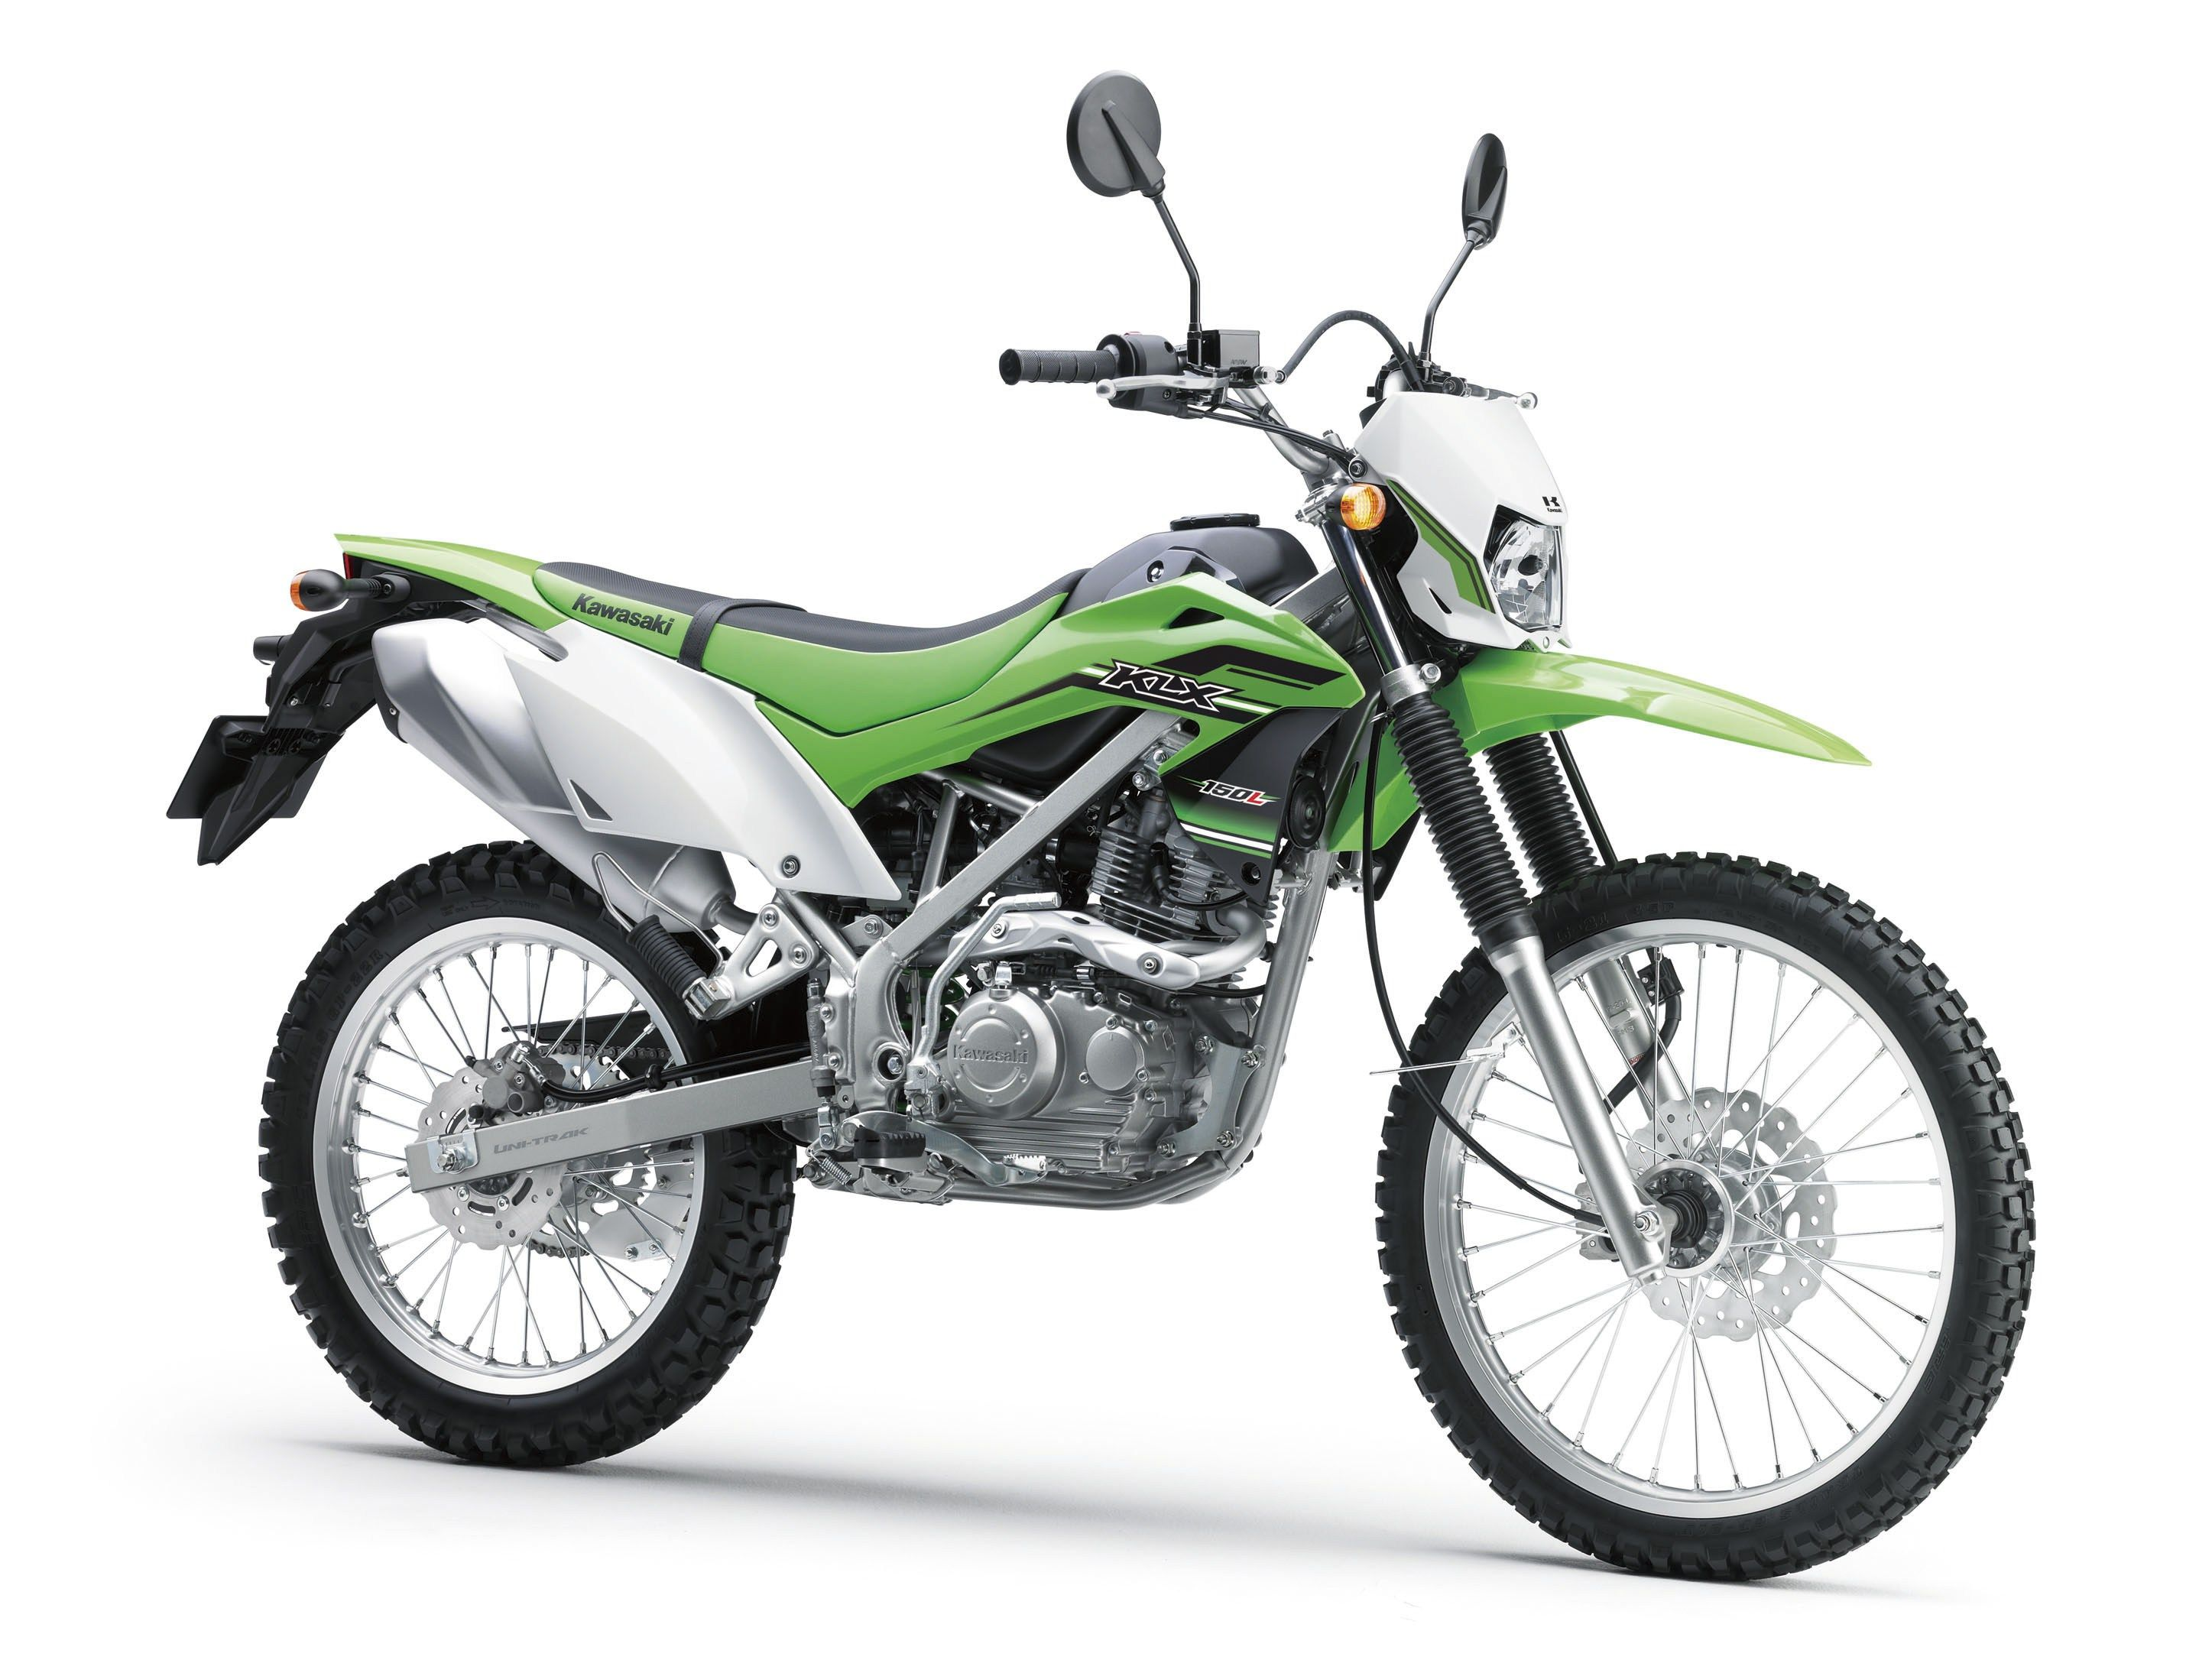 Nueva Kawasaki Klx 150 2017 Naves 4 4 Motos Enduro Motos Super Motos